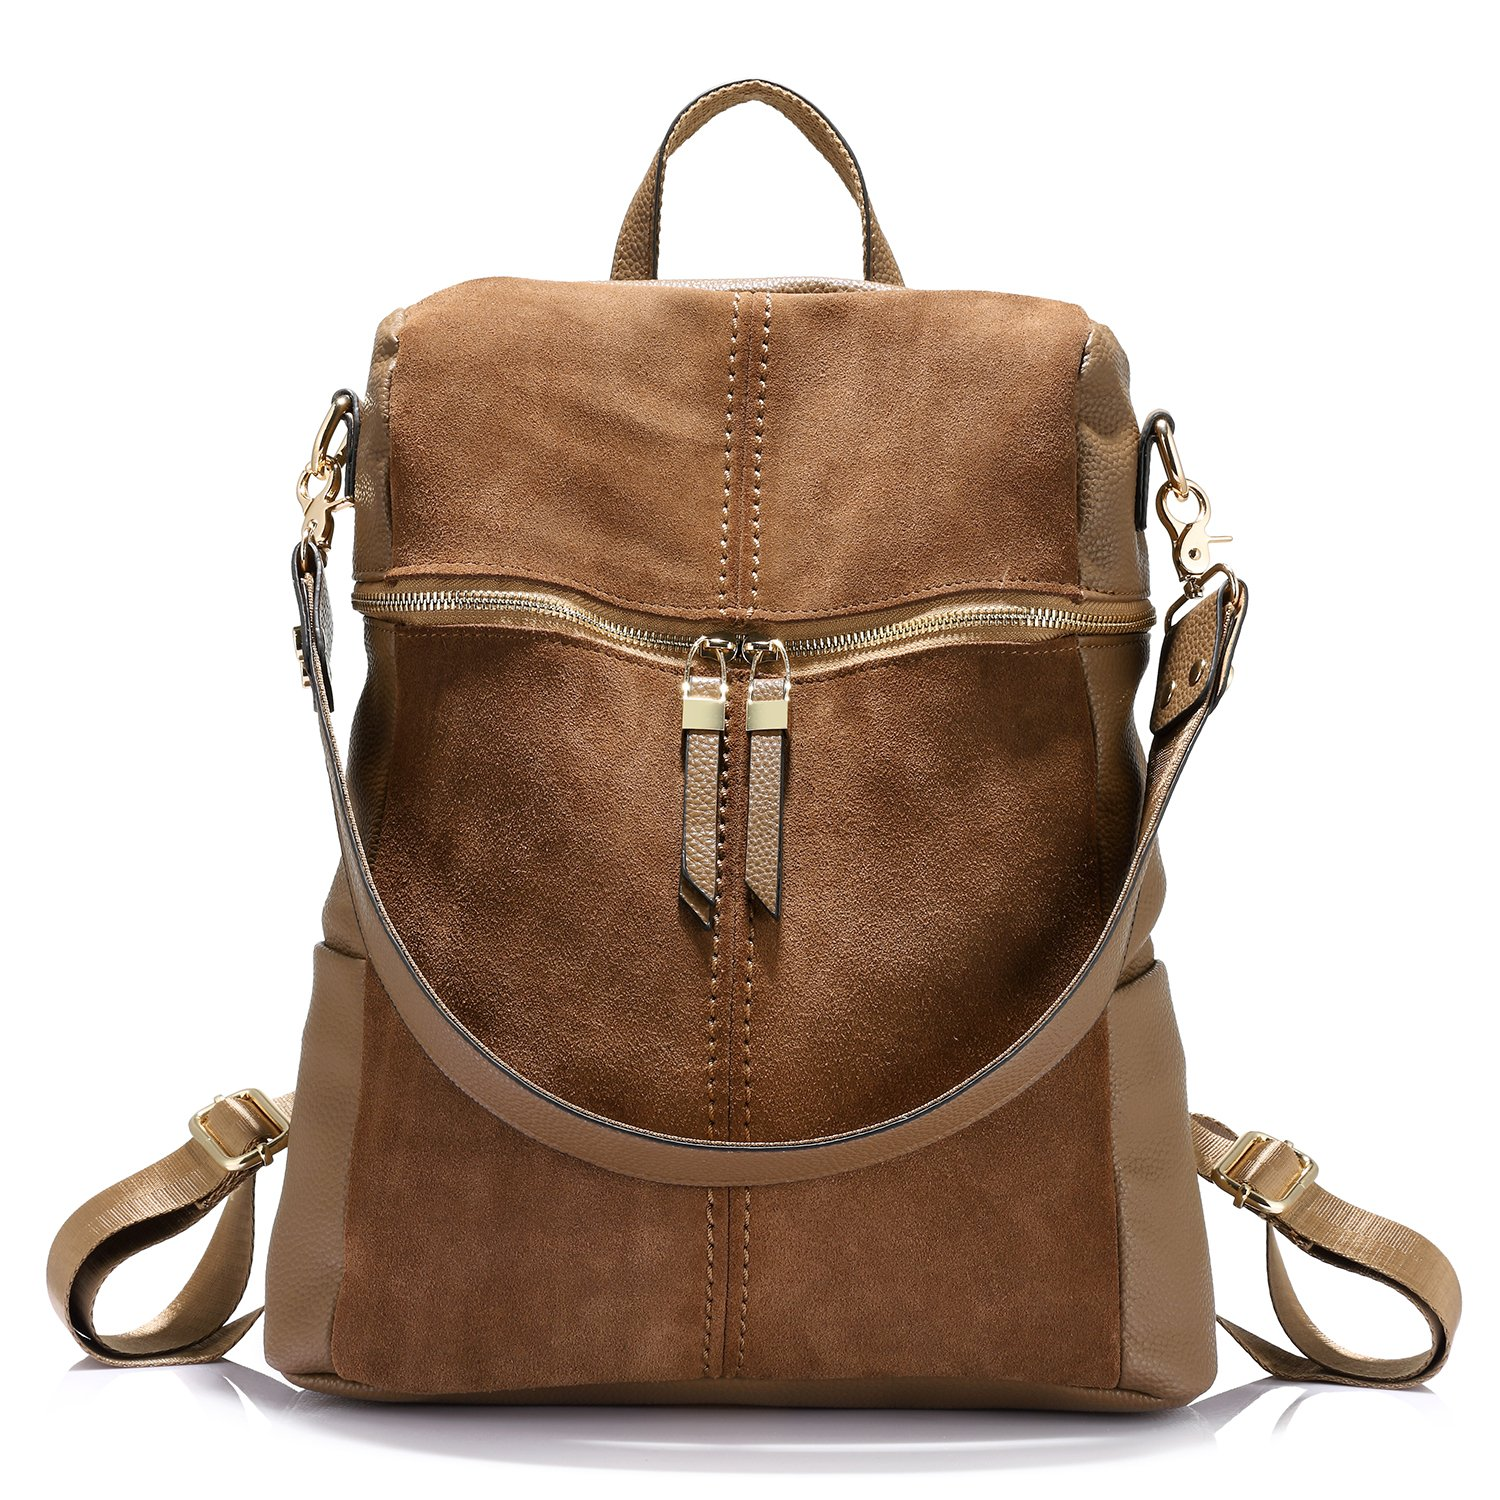 Backpack Shoulder Bag Purse Girls School Bag Casual Nubuck +Synthetic Leather Collage Style Khaki